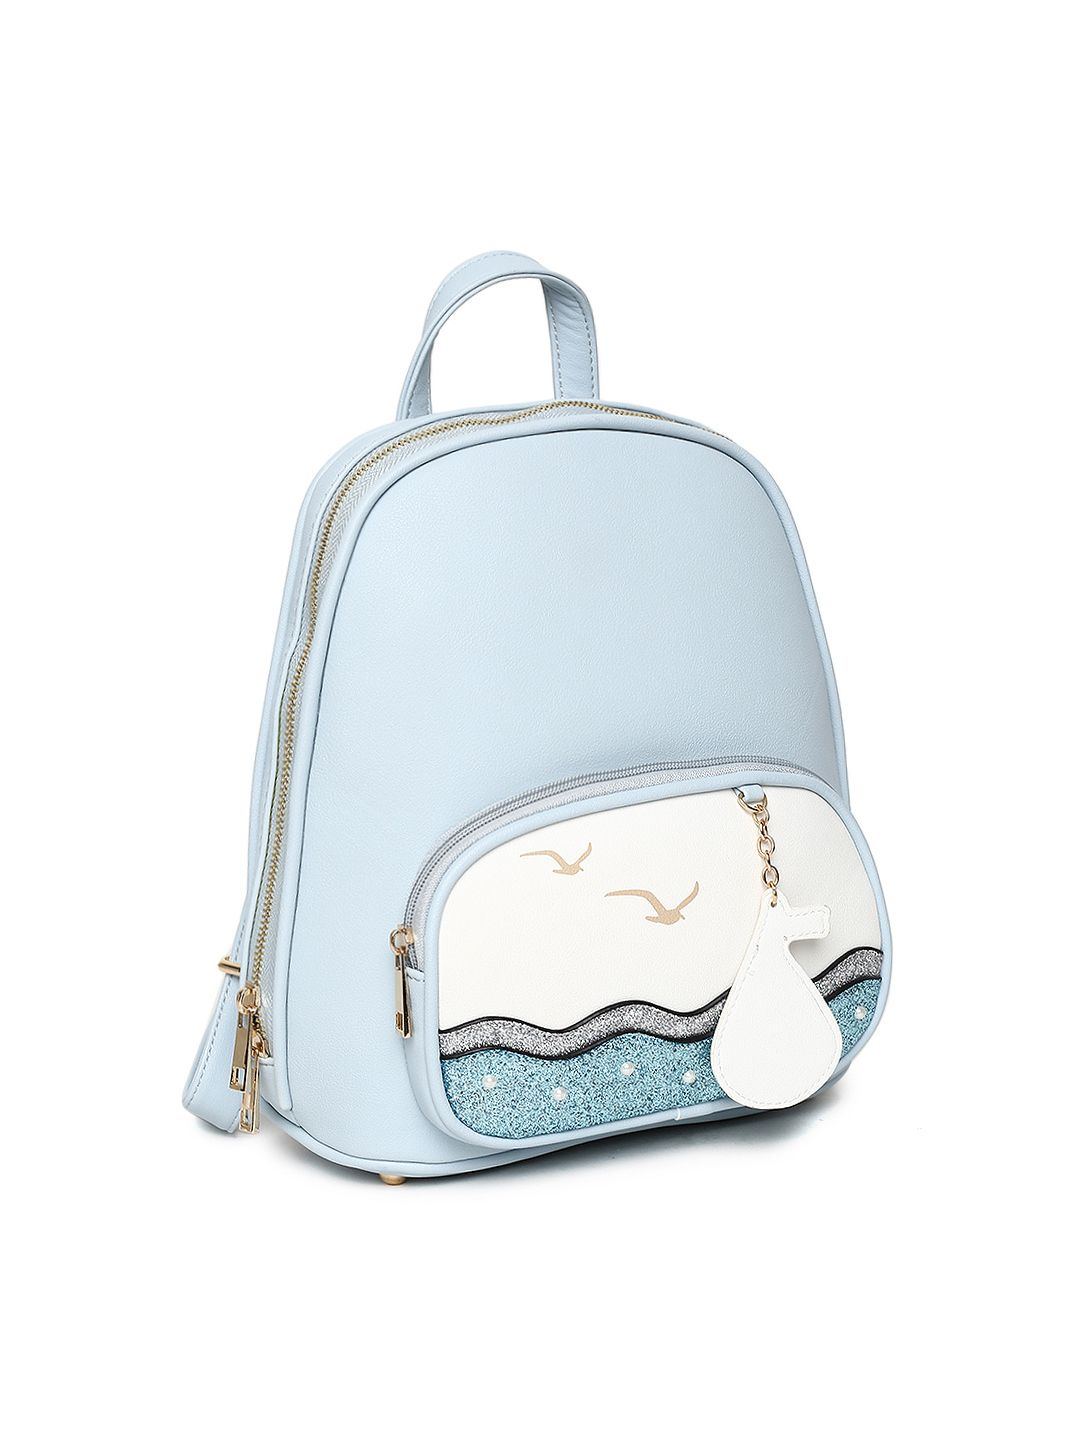 1e7fe9d184 Buy Ginger By Lifestyle Women Blue Graphic Backpack - - Accessories for  Women from Ginger By Lifestyle at Rs. 2199